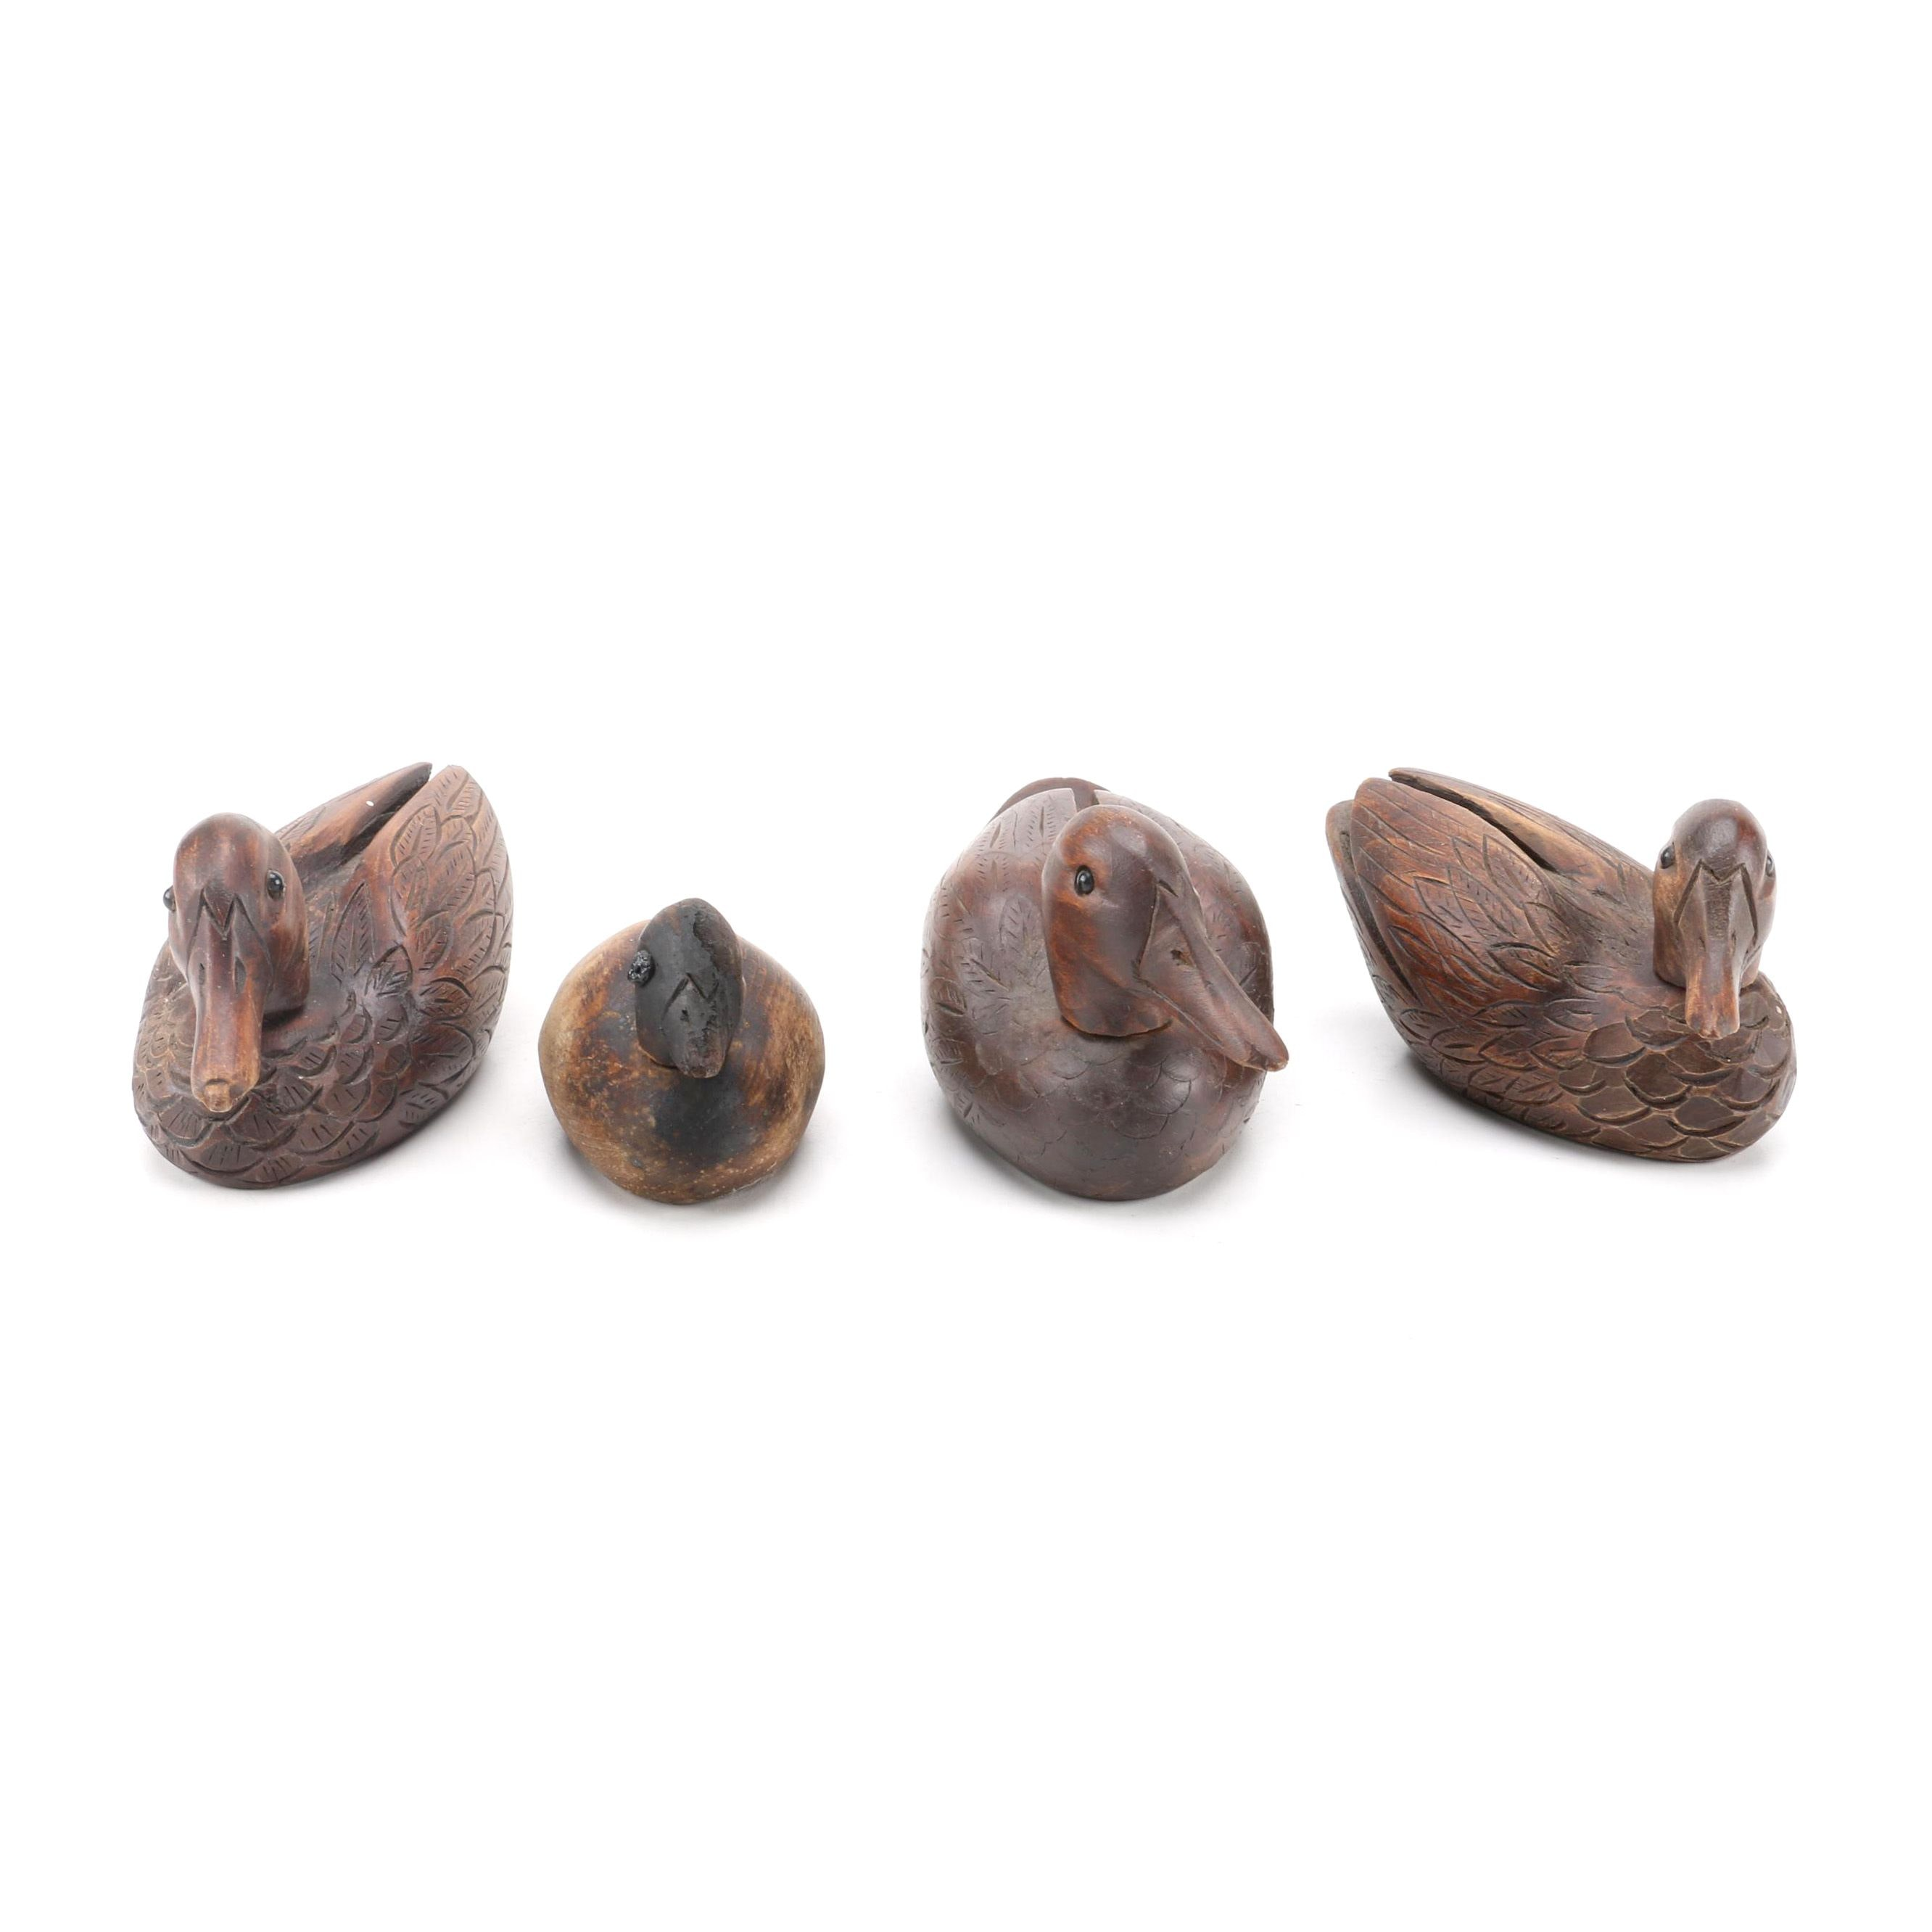 Collection of Vintage Hand Carved Wooden Ducks